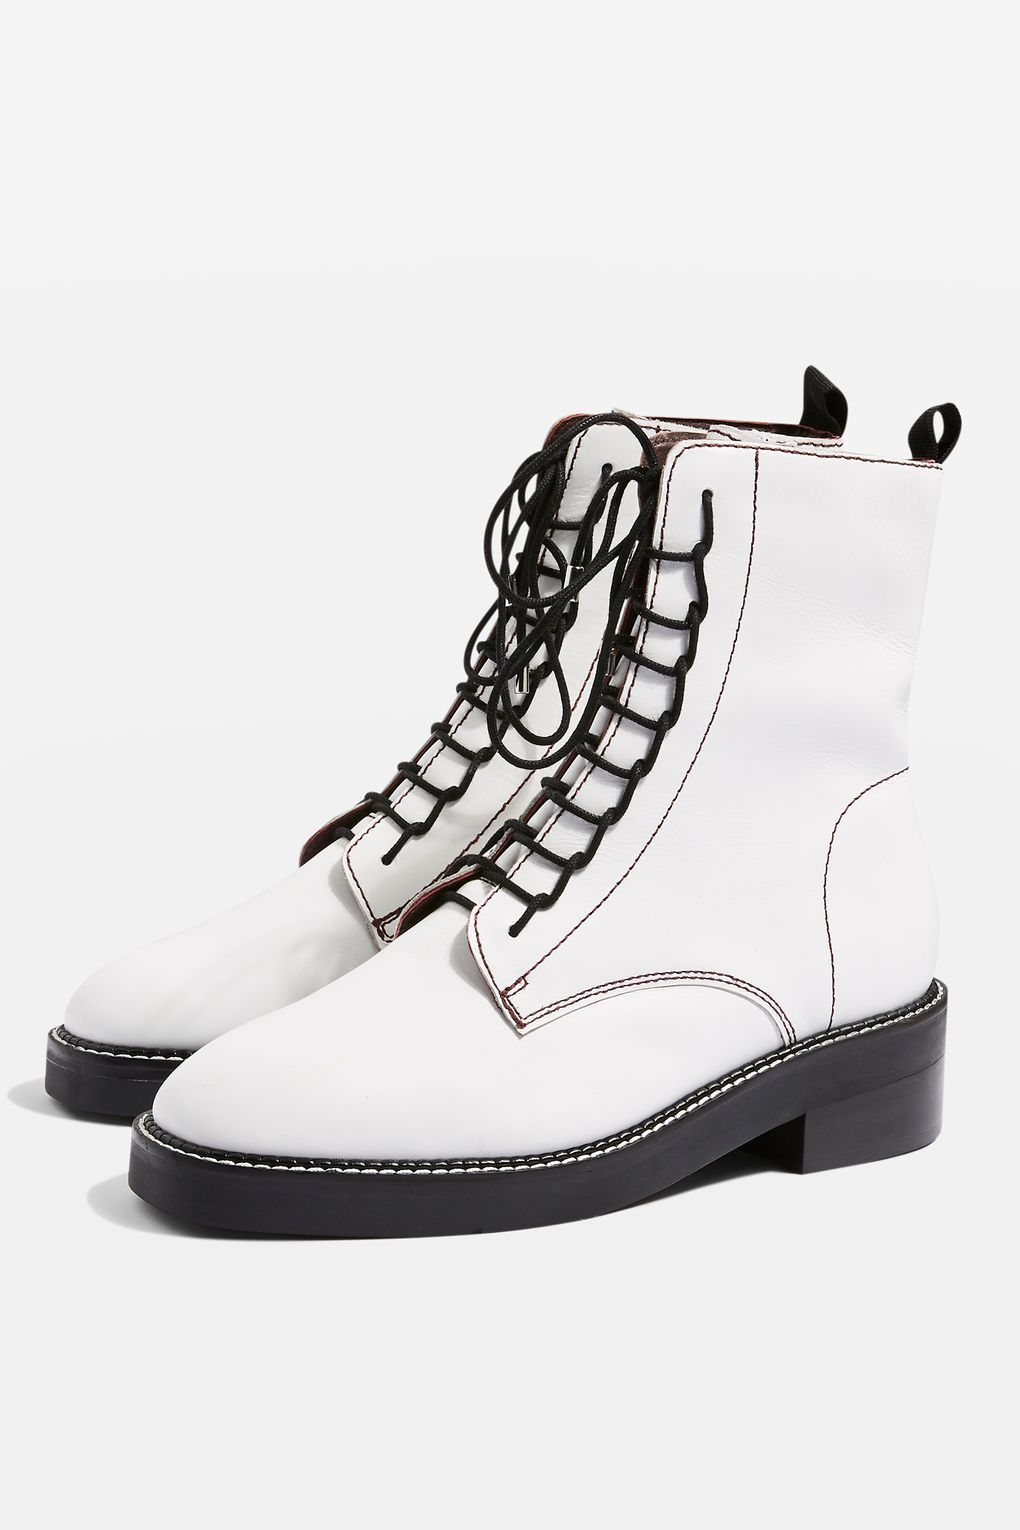 store official shop size 7 ARTIST Lace Up Boots | Lace up boots, Lace up, Boots